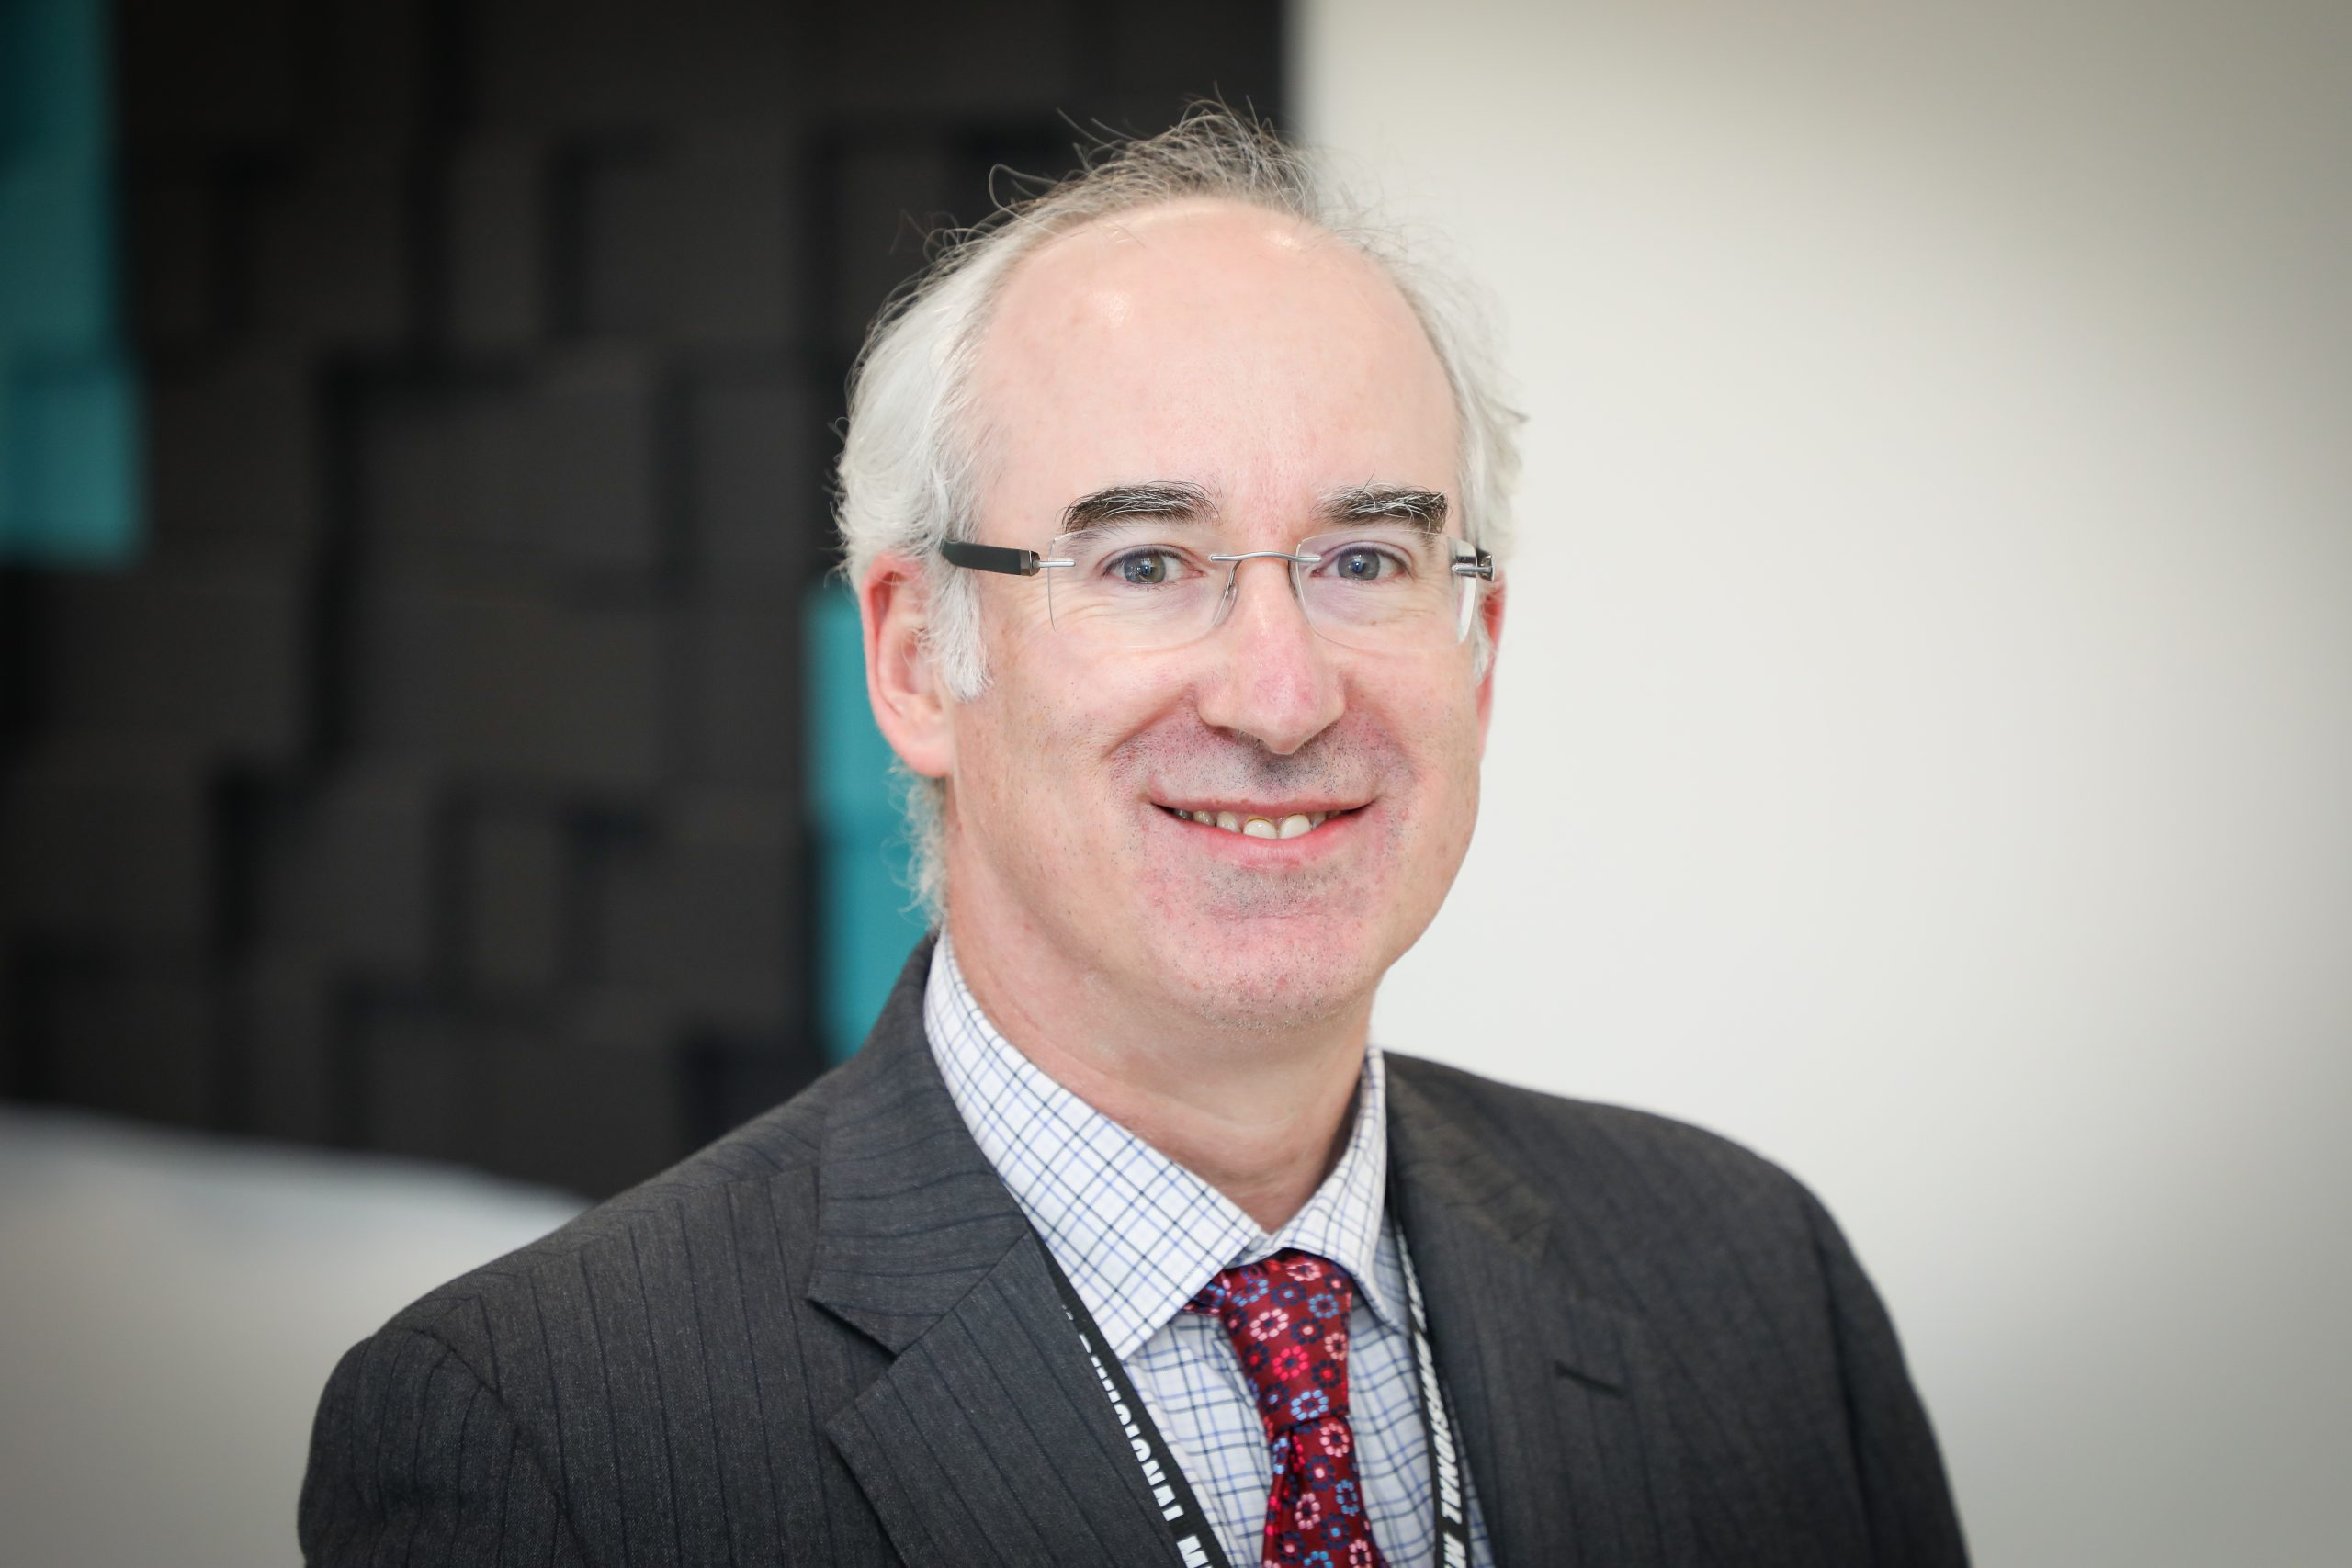 Headshot of Steve Canty, Divisional Medical Director at Lancashire Teaching Hospitals NHS Foundation Trust.